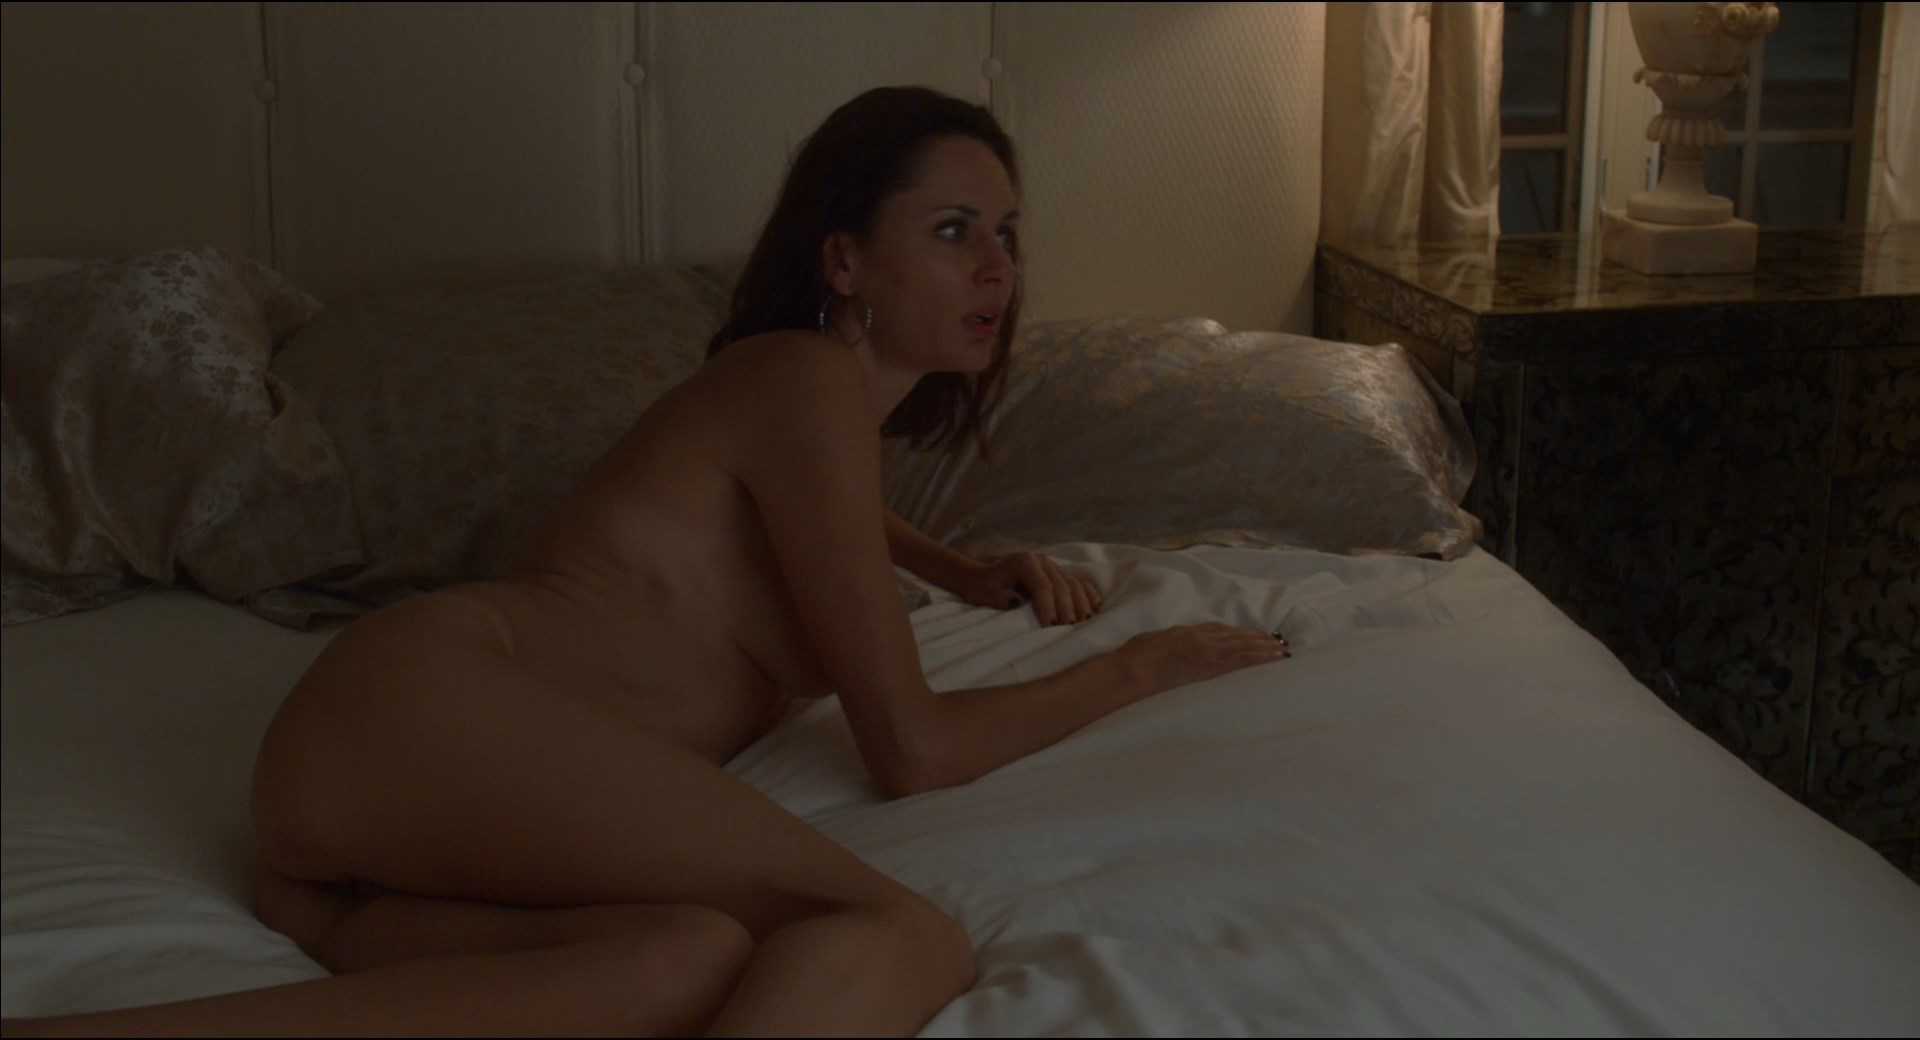 Naked julianne moore in short cuts ancensored